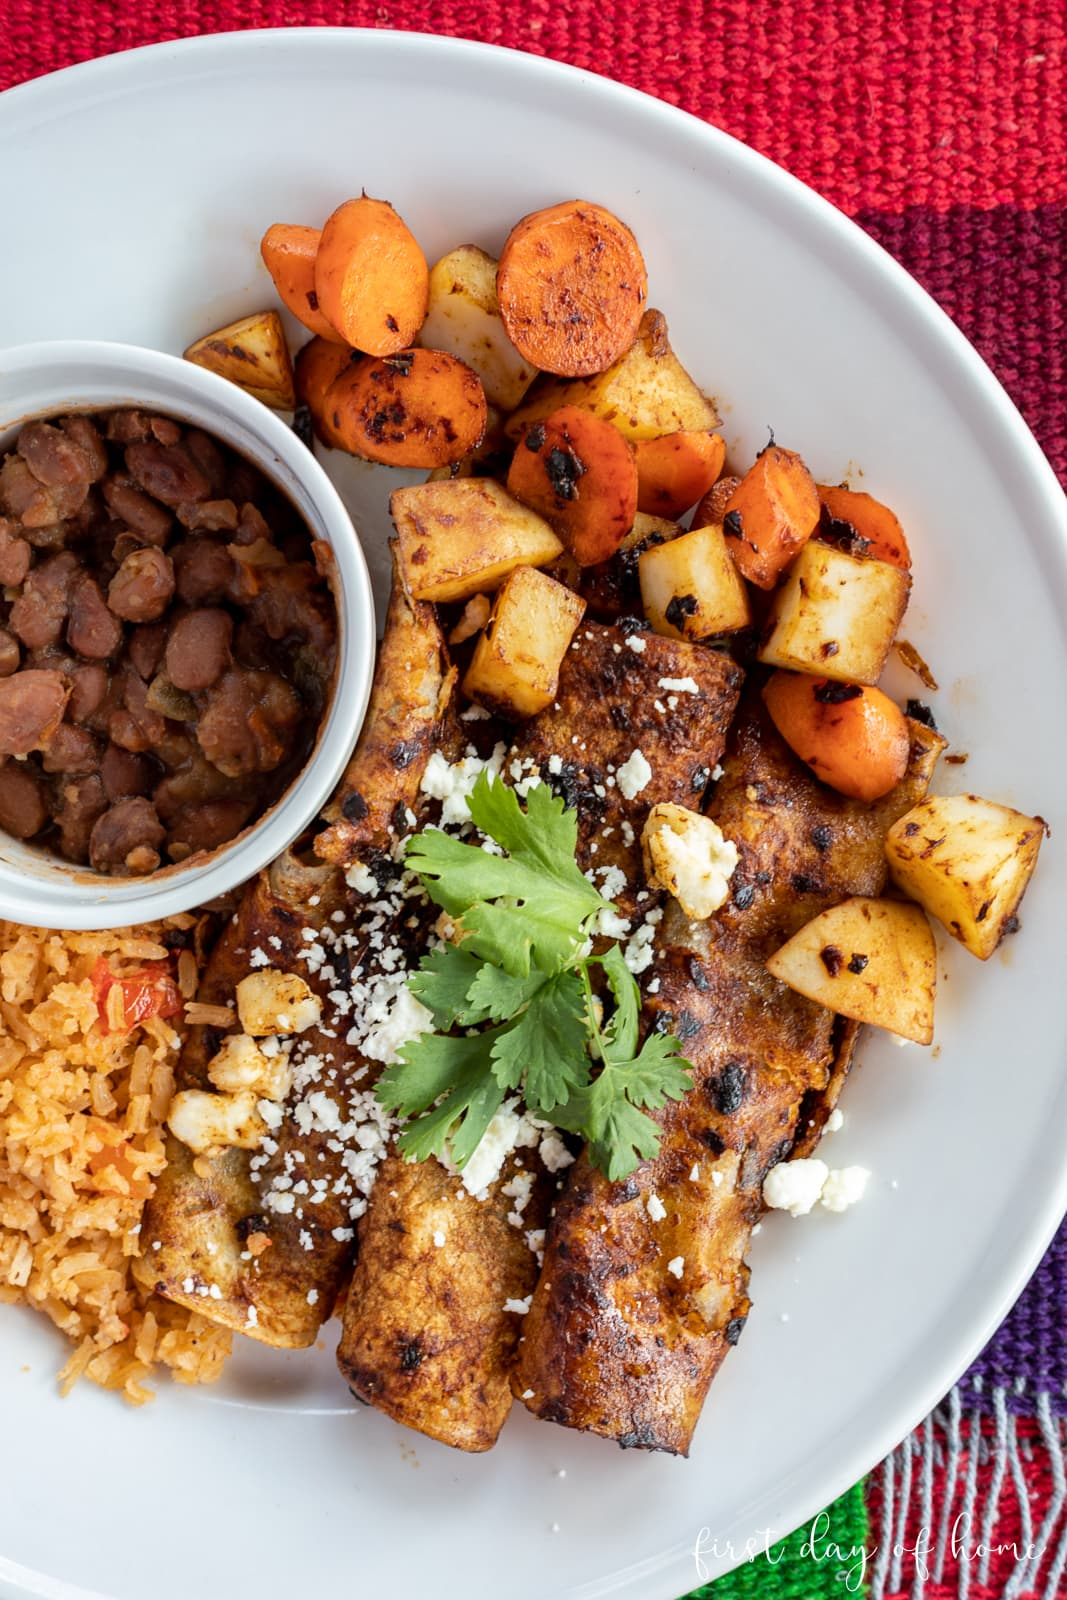 Red enchiladas (enchiladas rojas) served with diced carrots and potatoes, charro beans and Spanish rice